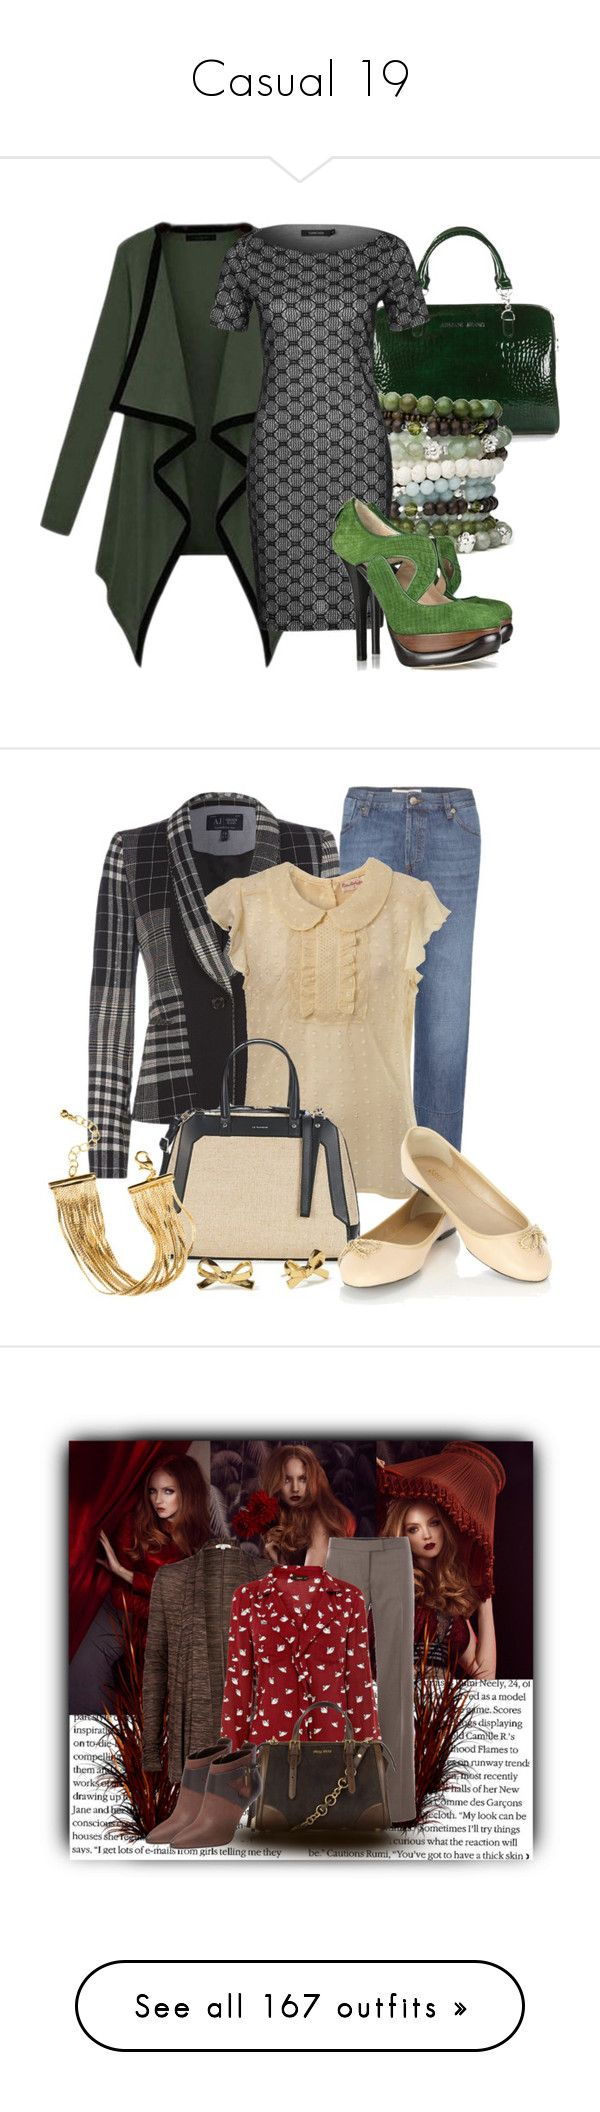 """""""Casual 19"""" by ericmyri ❤ liked on Polyvore featuring CO, Armani Jeans, Cousin Claudine, TURNOVER, Fendi, Marni, Miss Selfridge, Oasis, Kate Spade and H&M"""